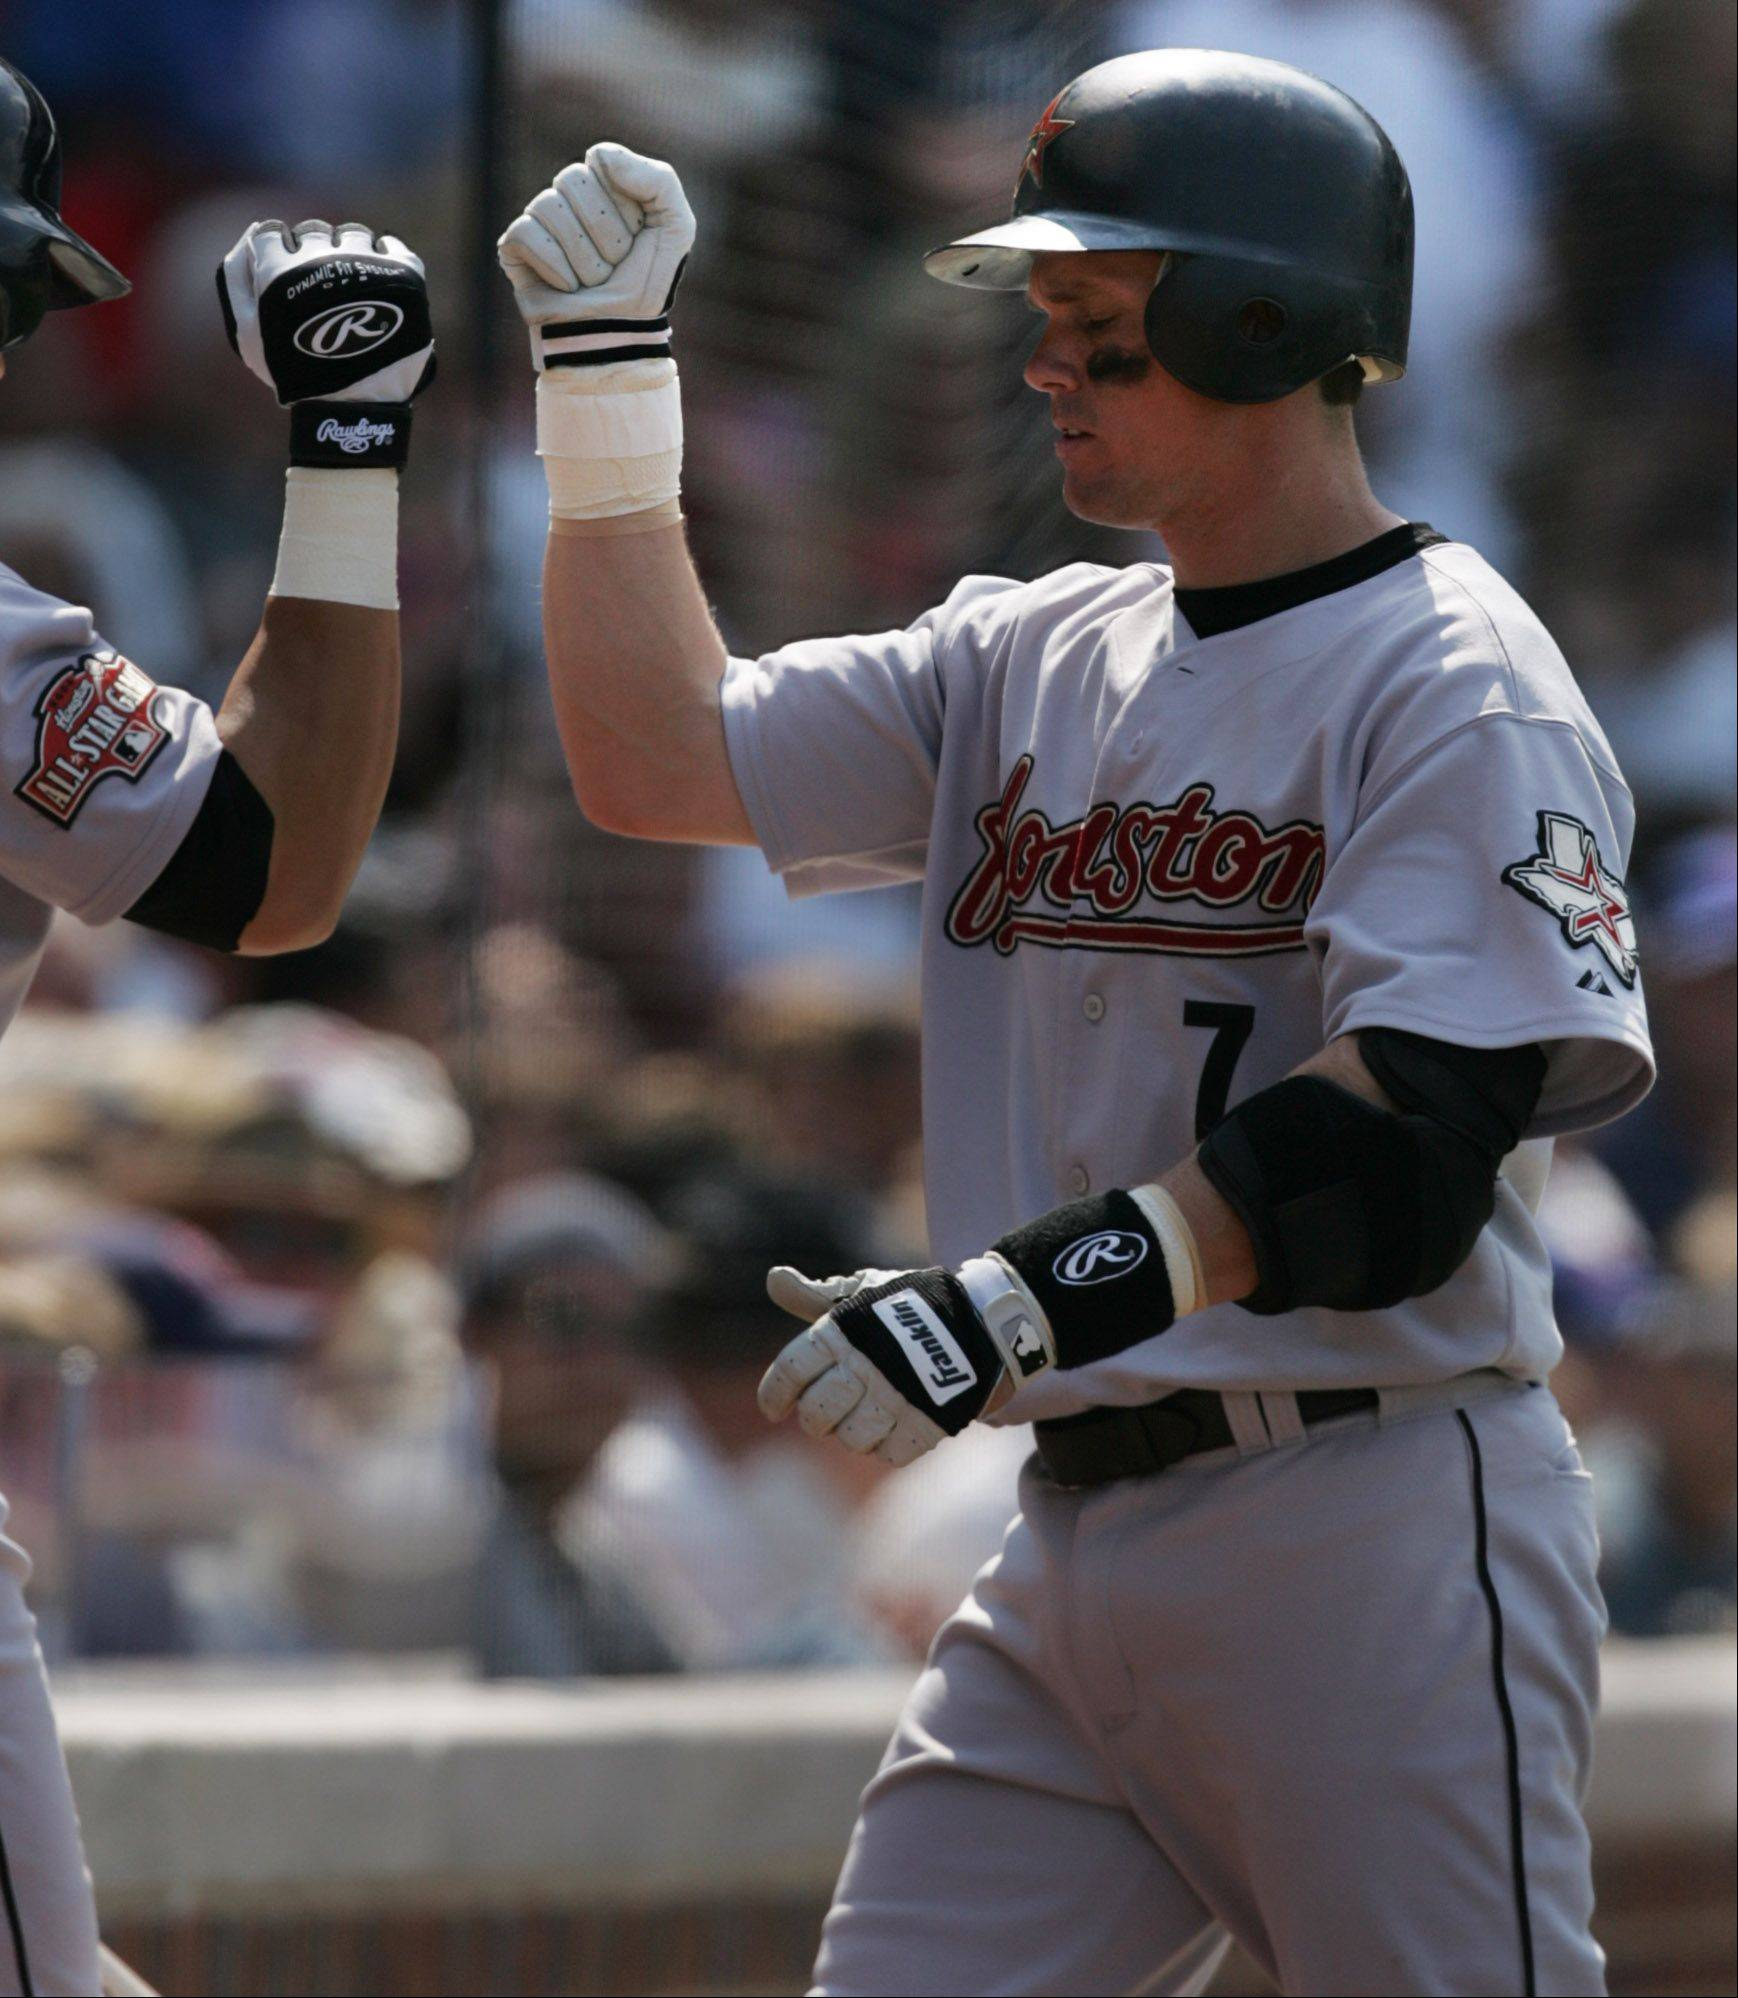 Former Houston Astros player Craig Biggio fell two votes short of getting into the National Baseball Hall of Fame.